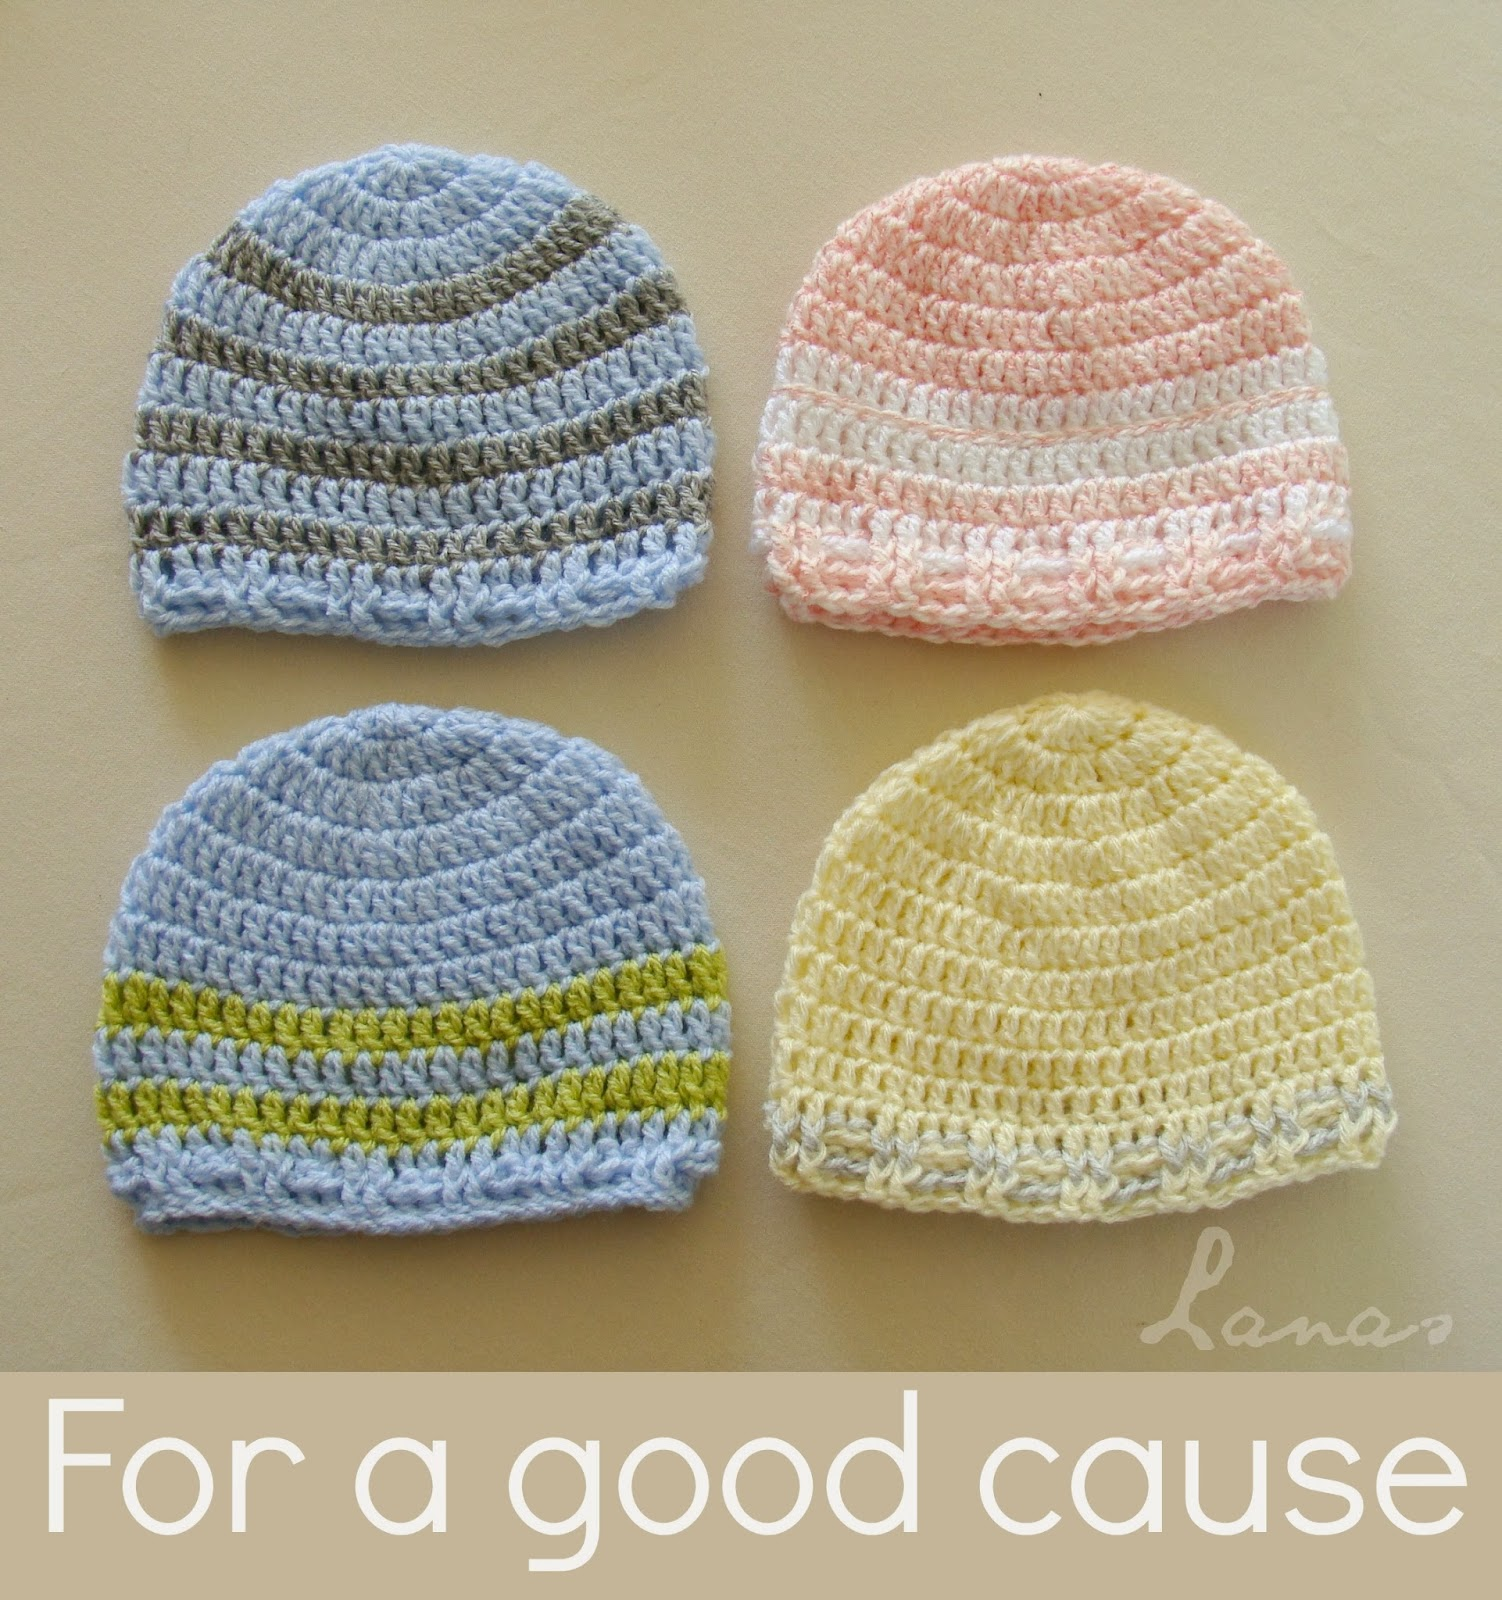 Crocheting For A Cause : Lanas de Ana: Crochet for a Good Cause